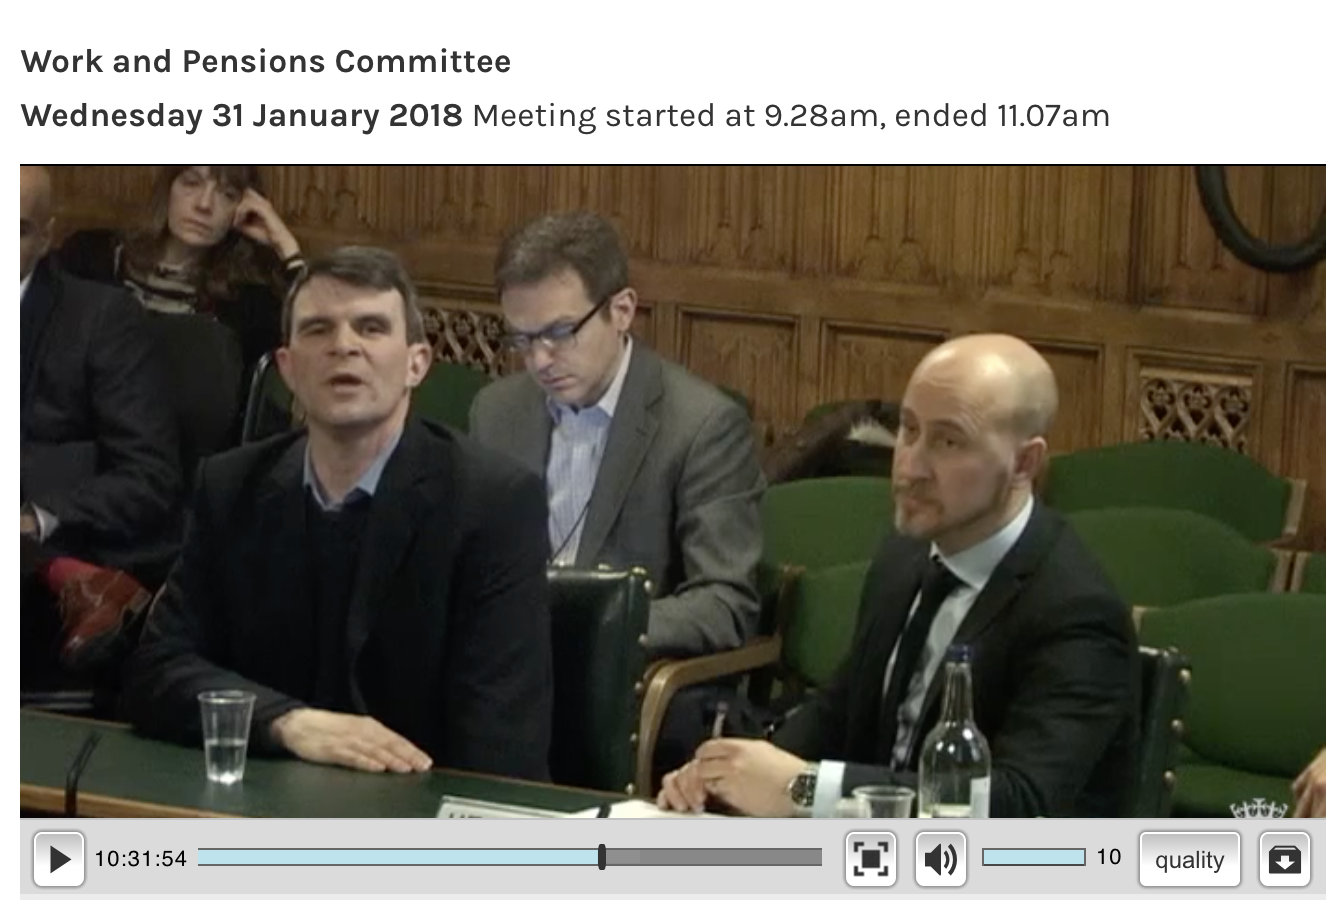 Parliament TV showed the session live and the recording is online now